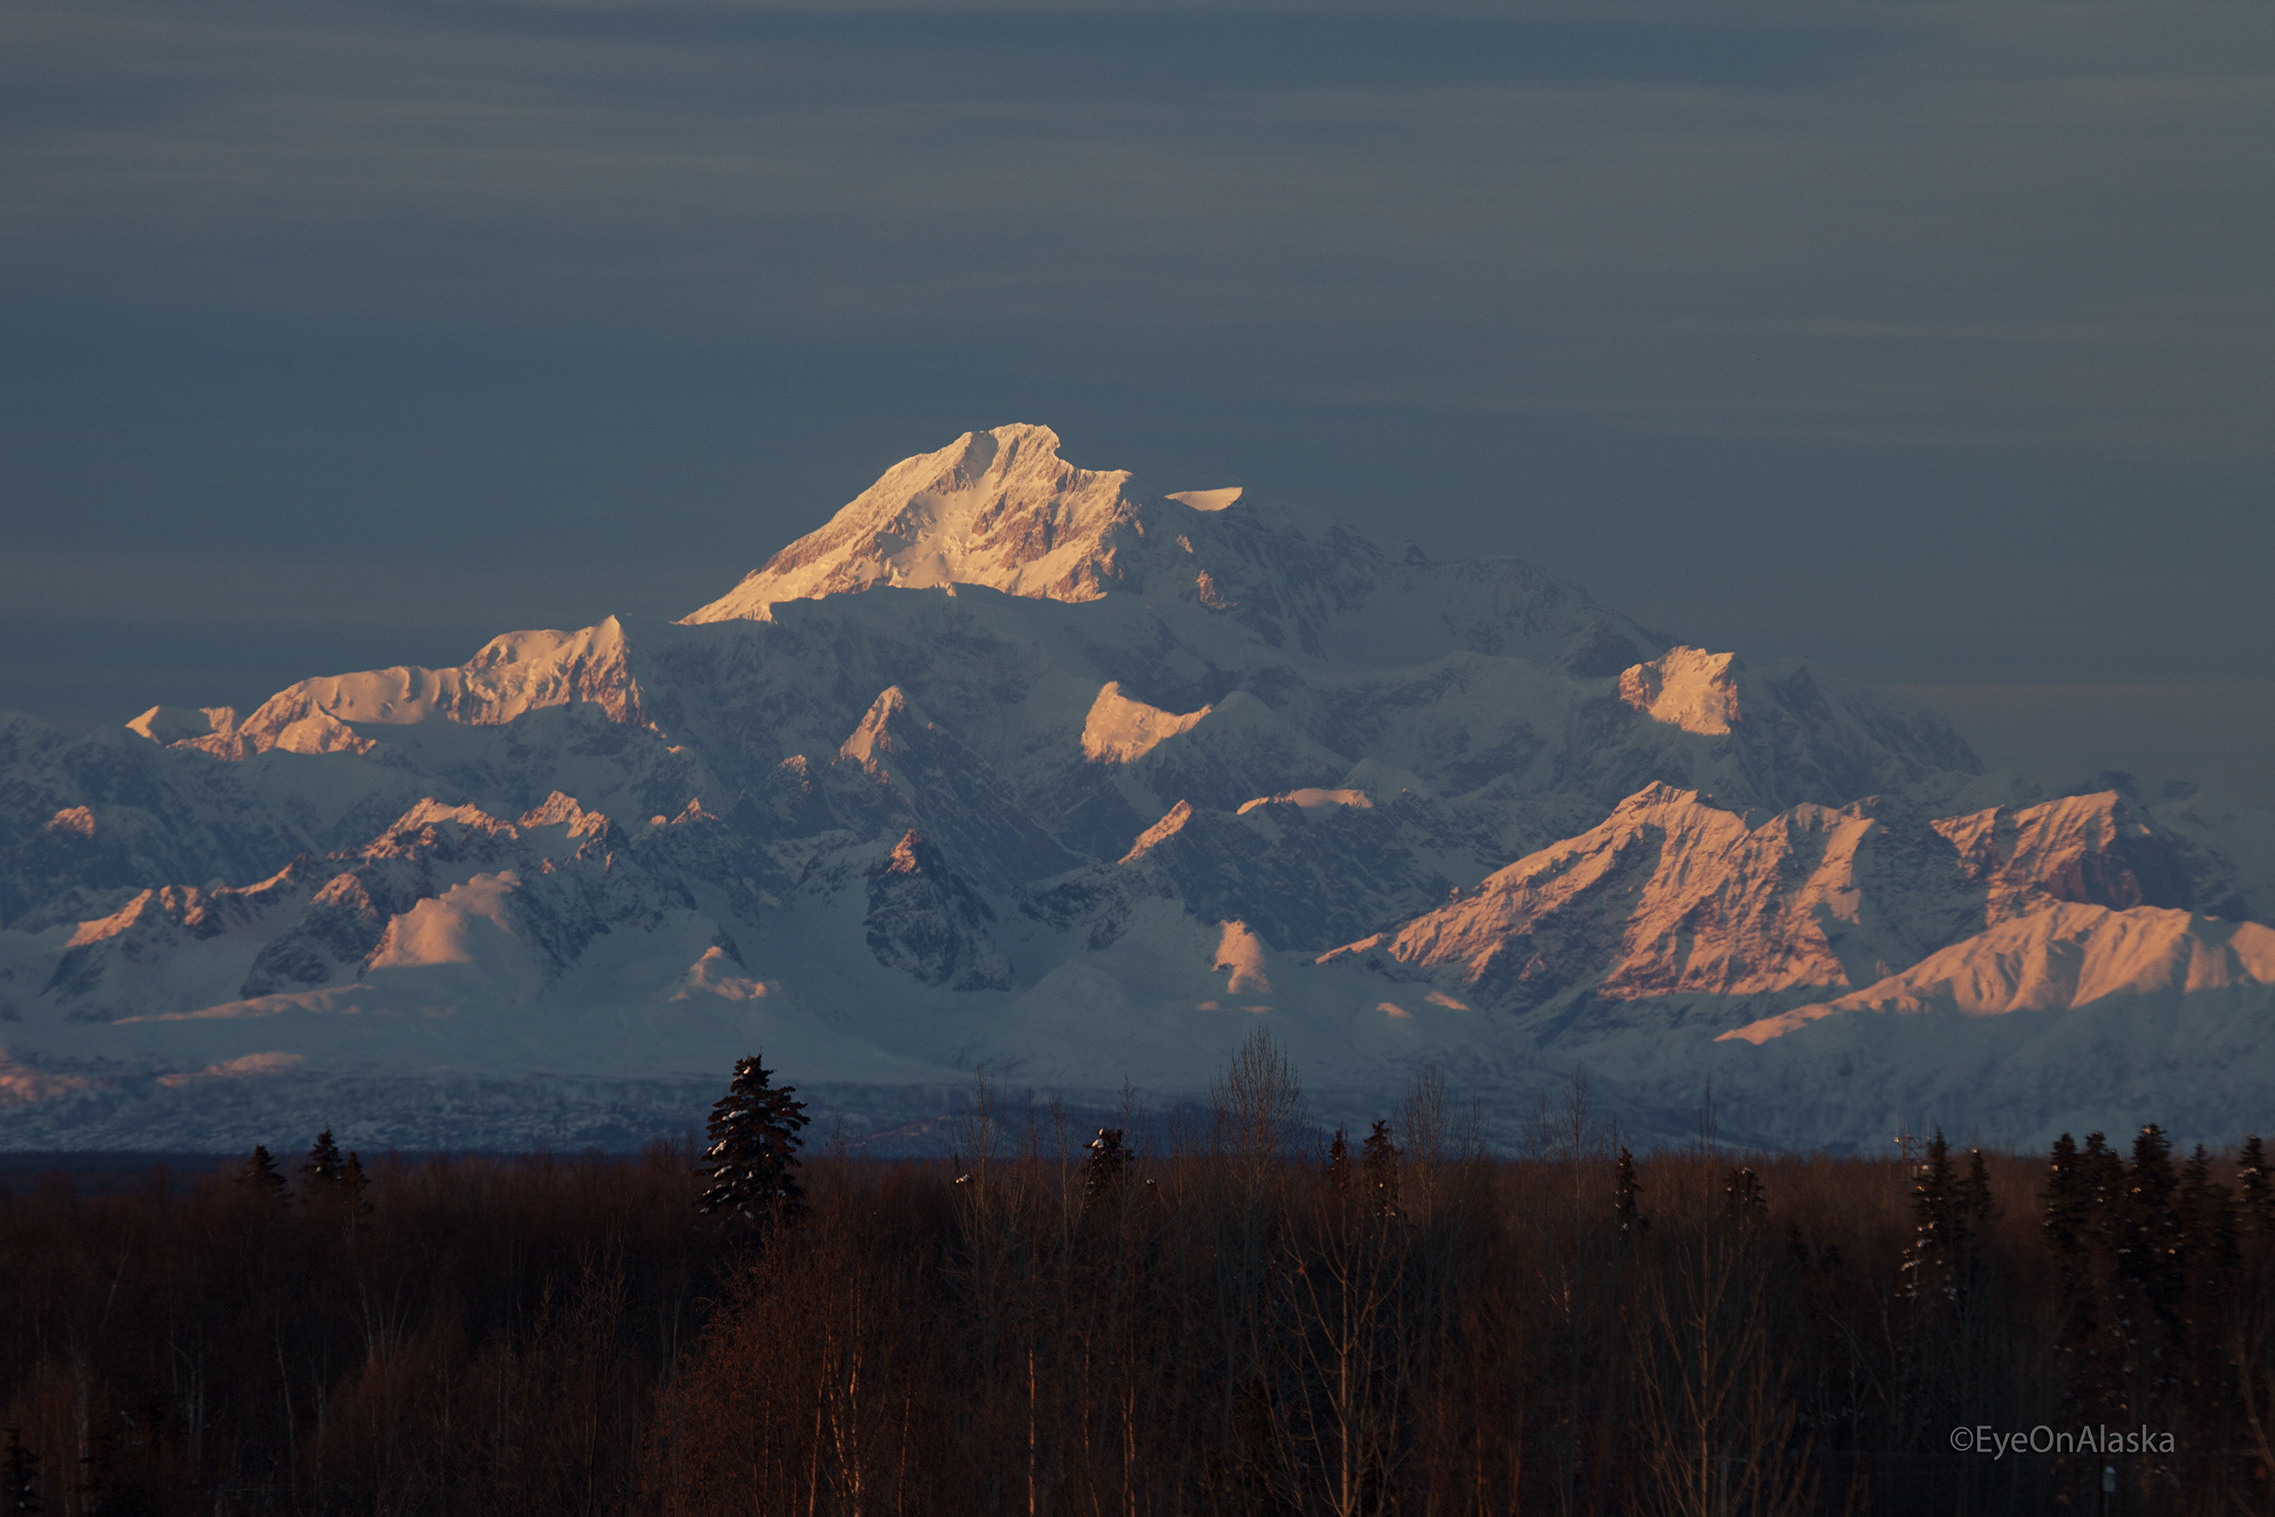 Denali from the Talkeetna overlook.